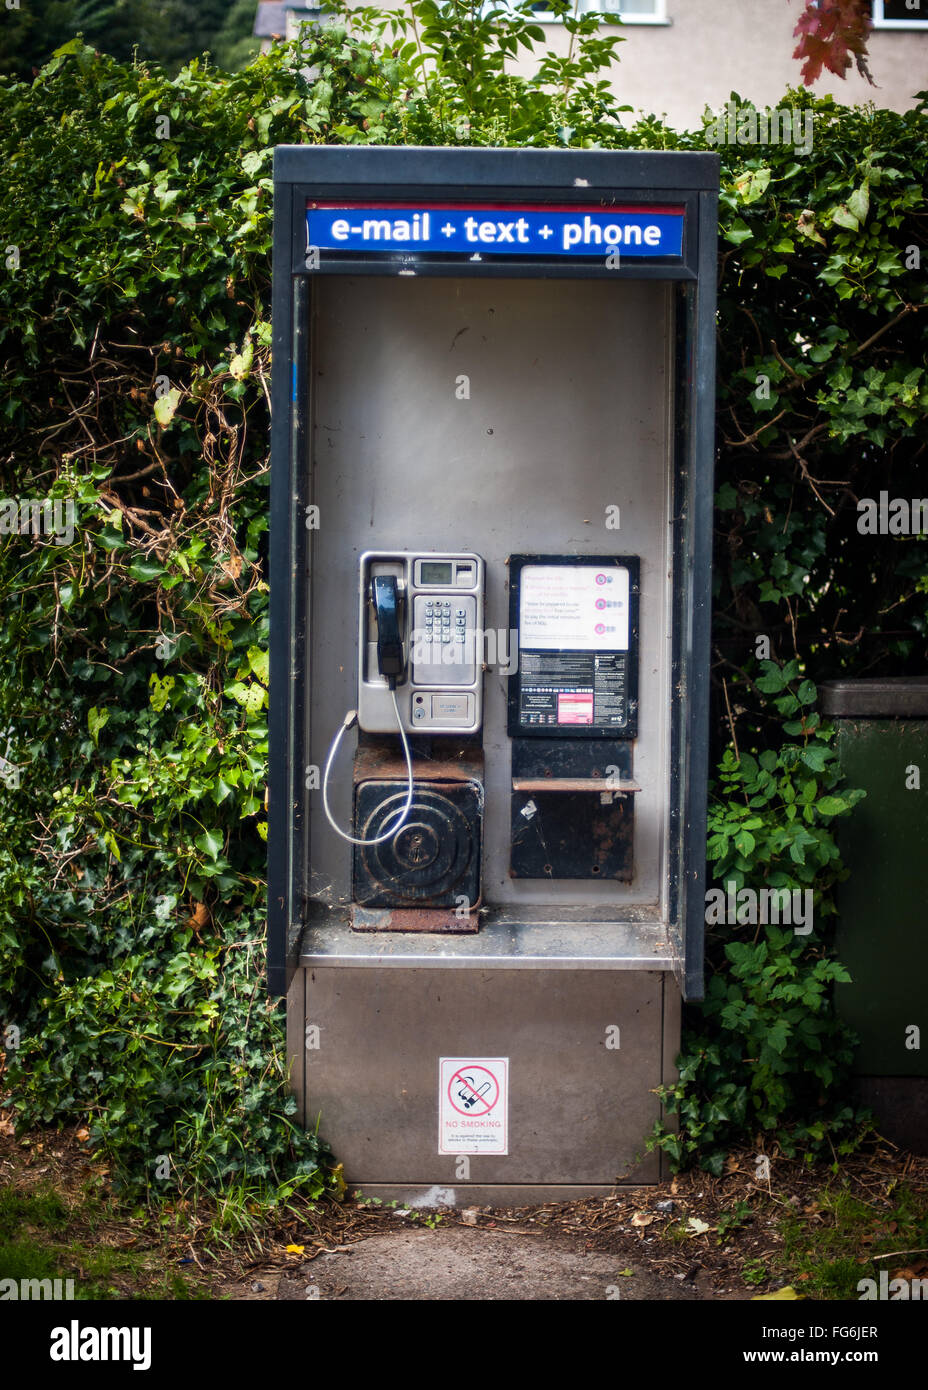 Antiquated phone box, Weston-Super-Mare, England - Stock Image